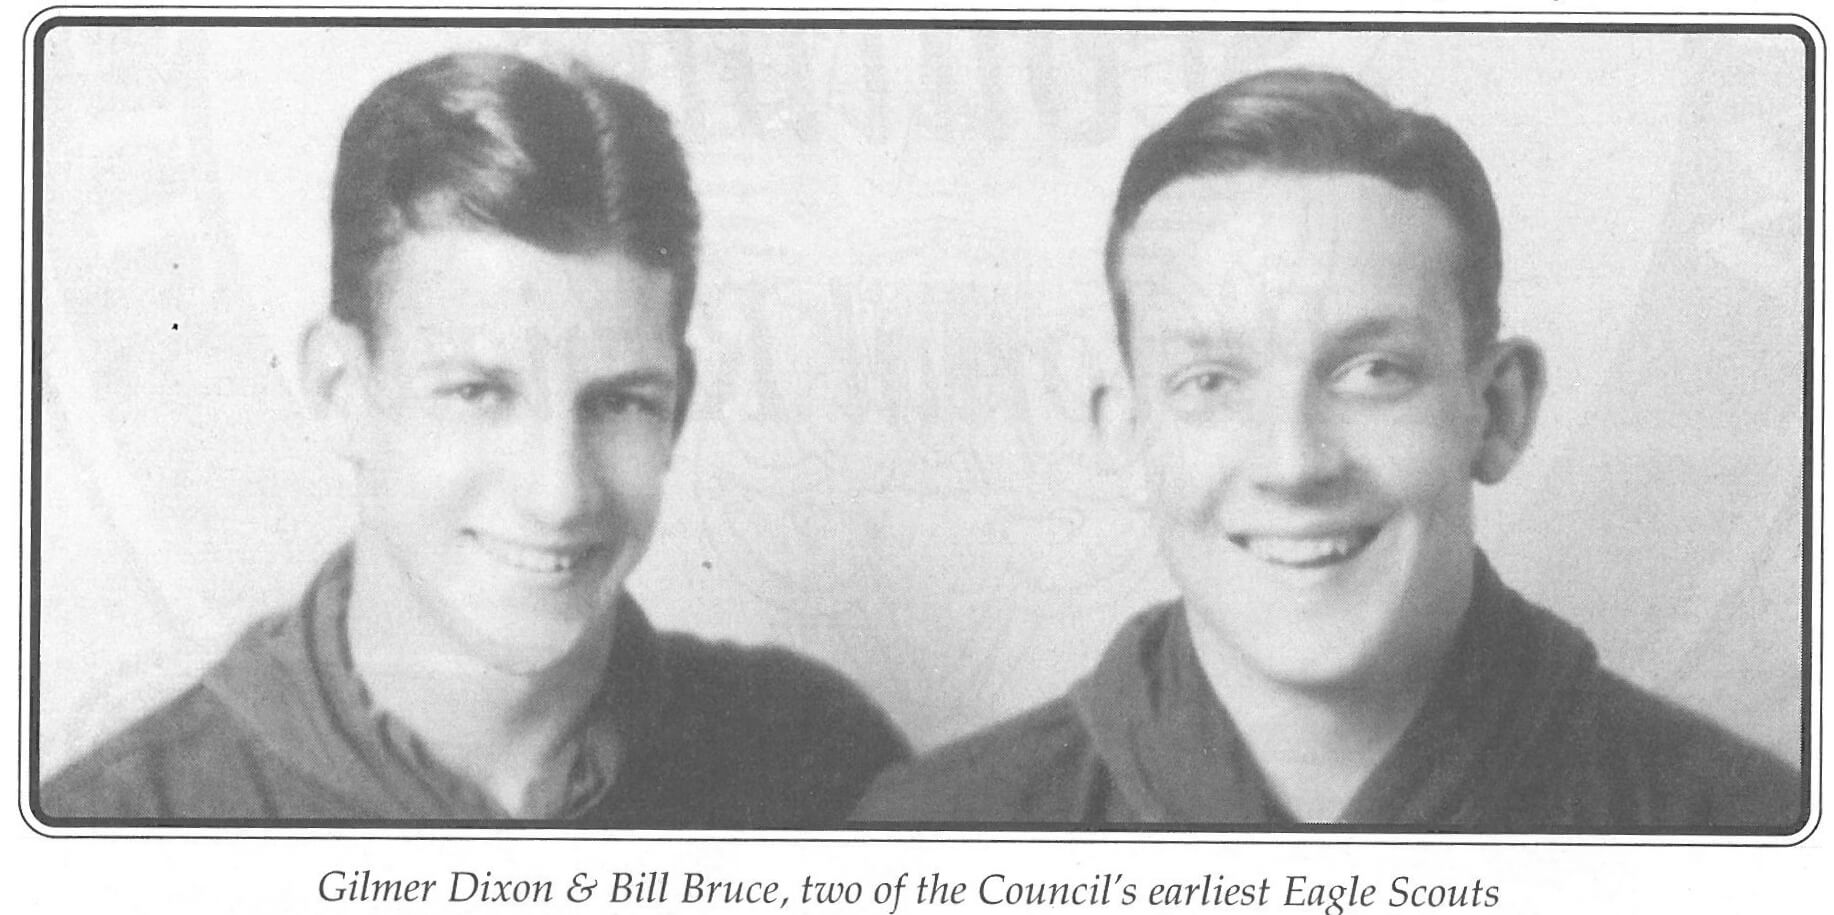 Early Eagle Scouts